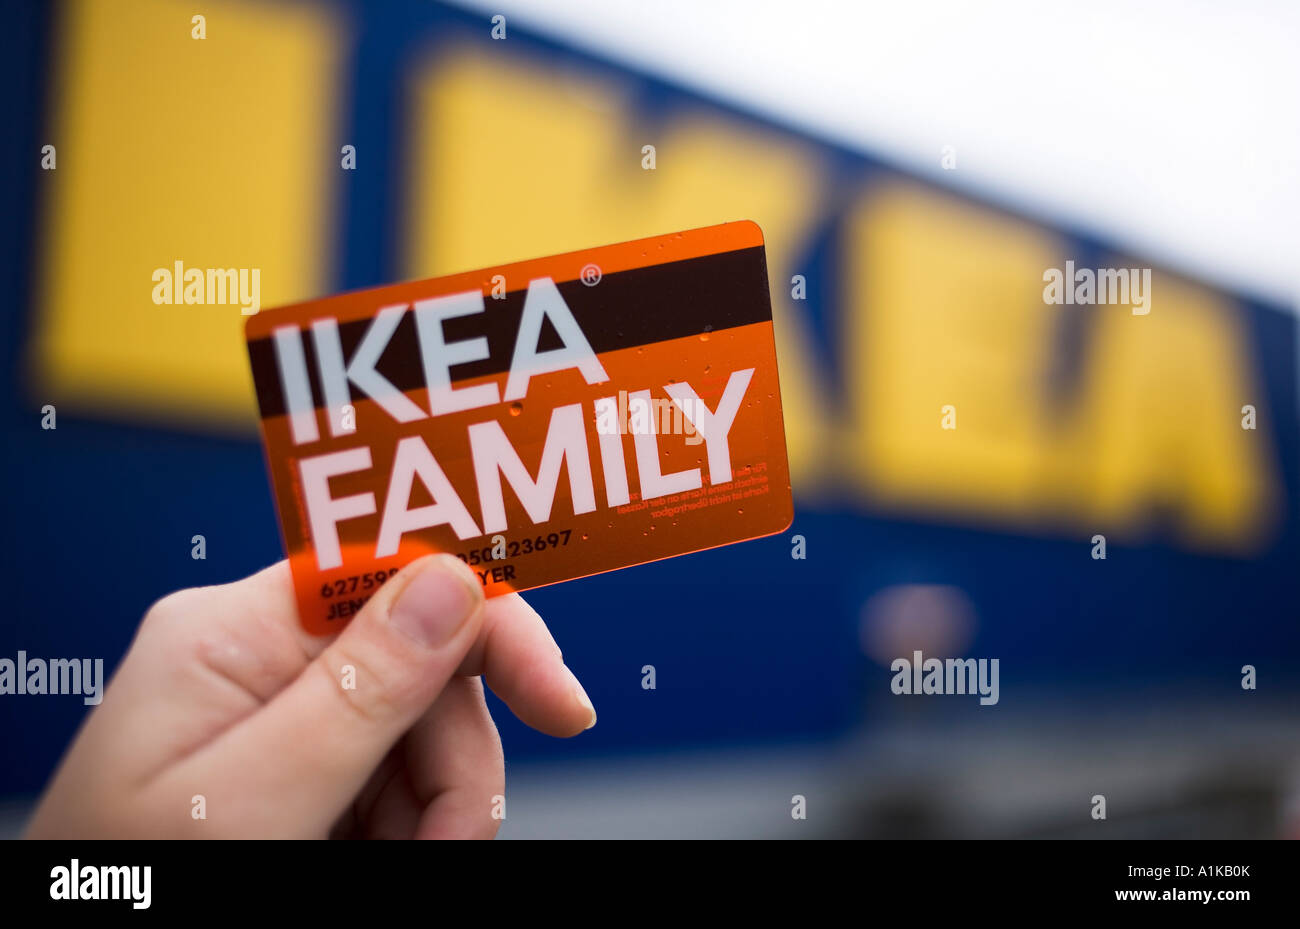 brand new membership card for ikea family members stock photo royalty free image 10280370 alamy. Black Bedroom Furniture Sets. Home Design Ideas